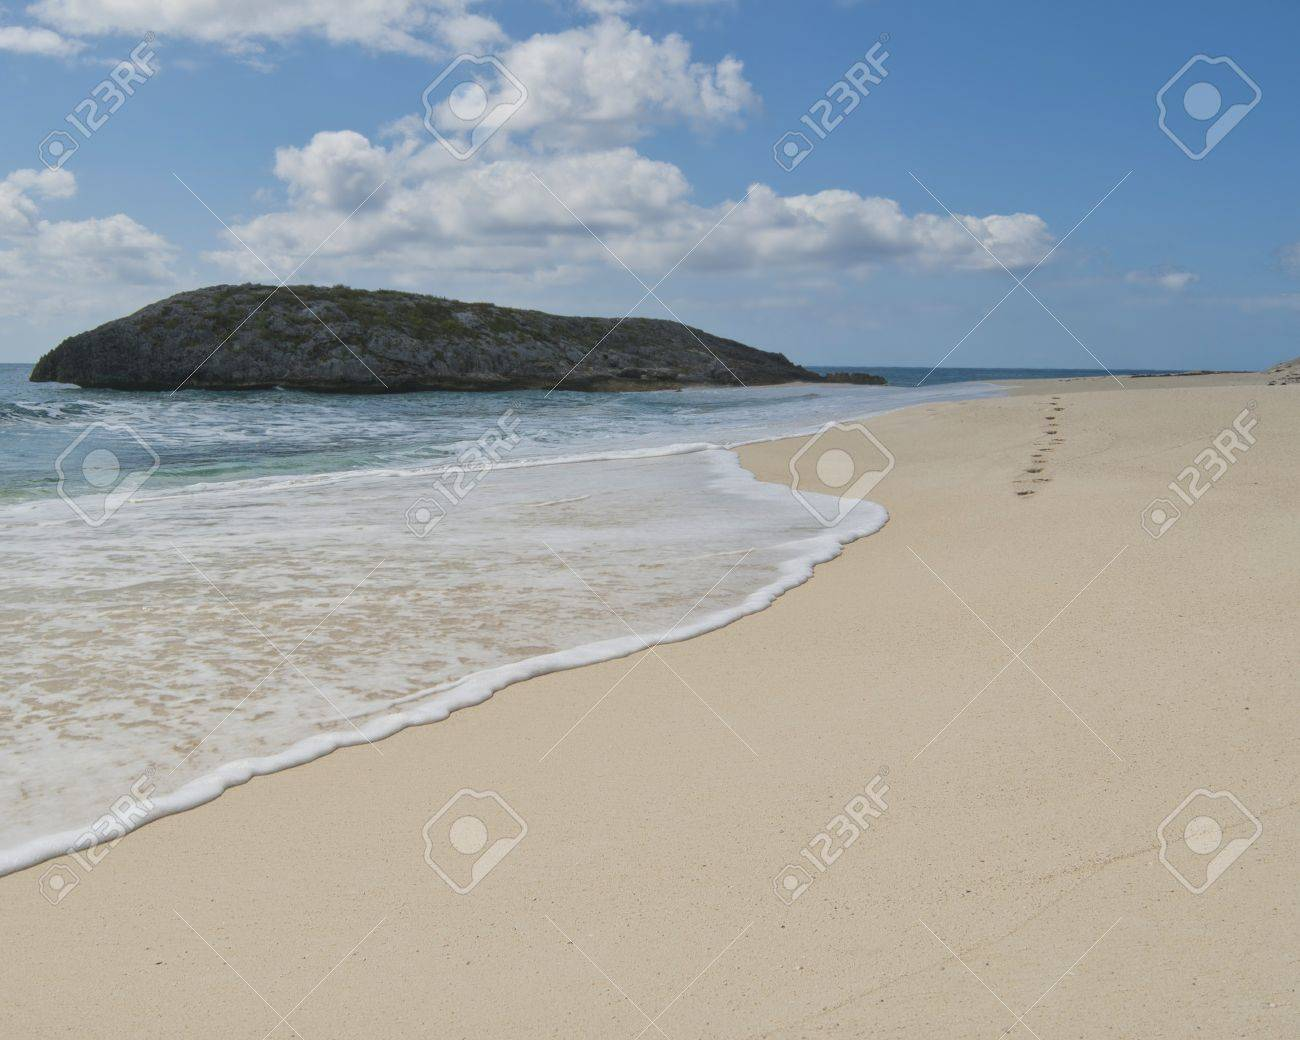 footprints on a beach being erased by the surf on a Bahamas beach Stock Photo - 12819895